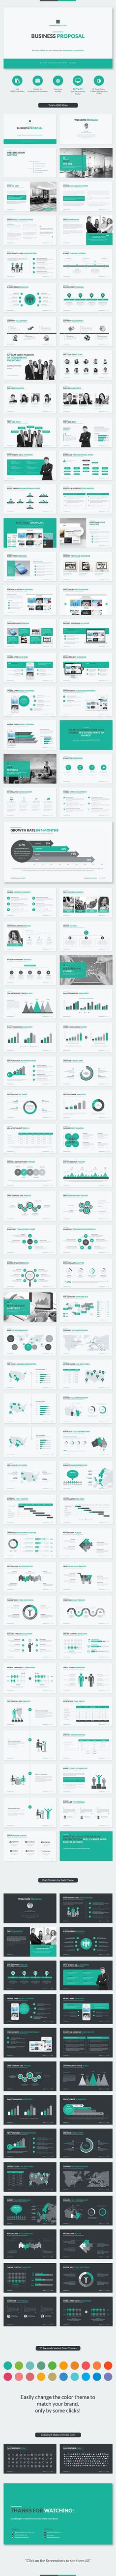 Business Proposal PowerPoint Template #design Download…